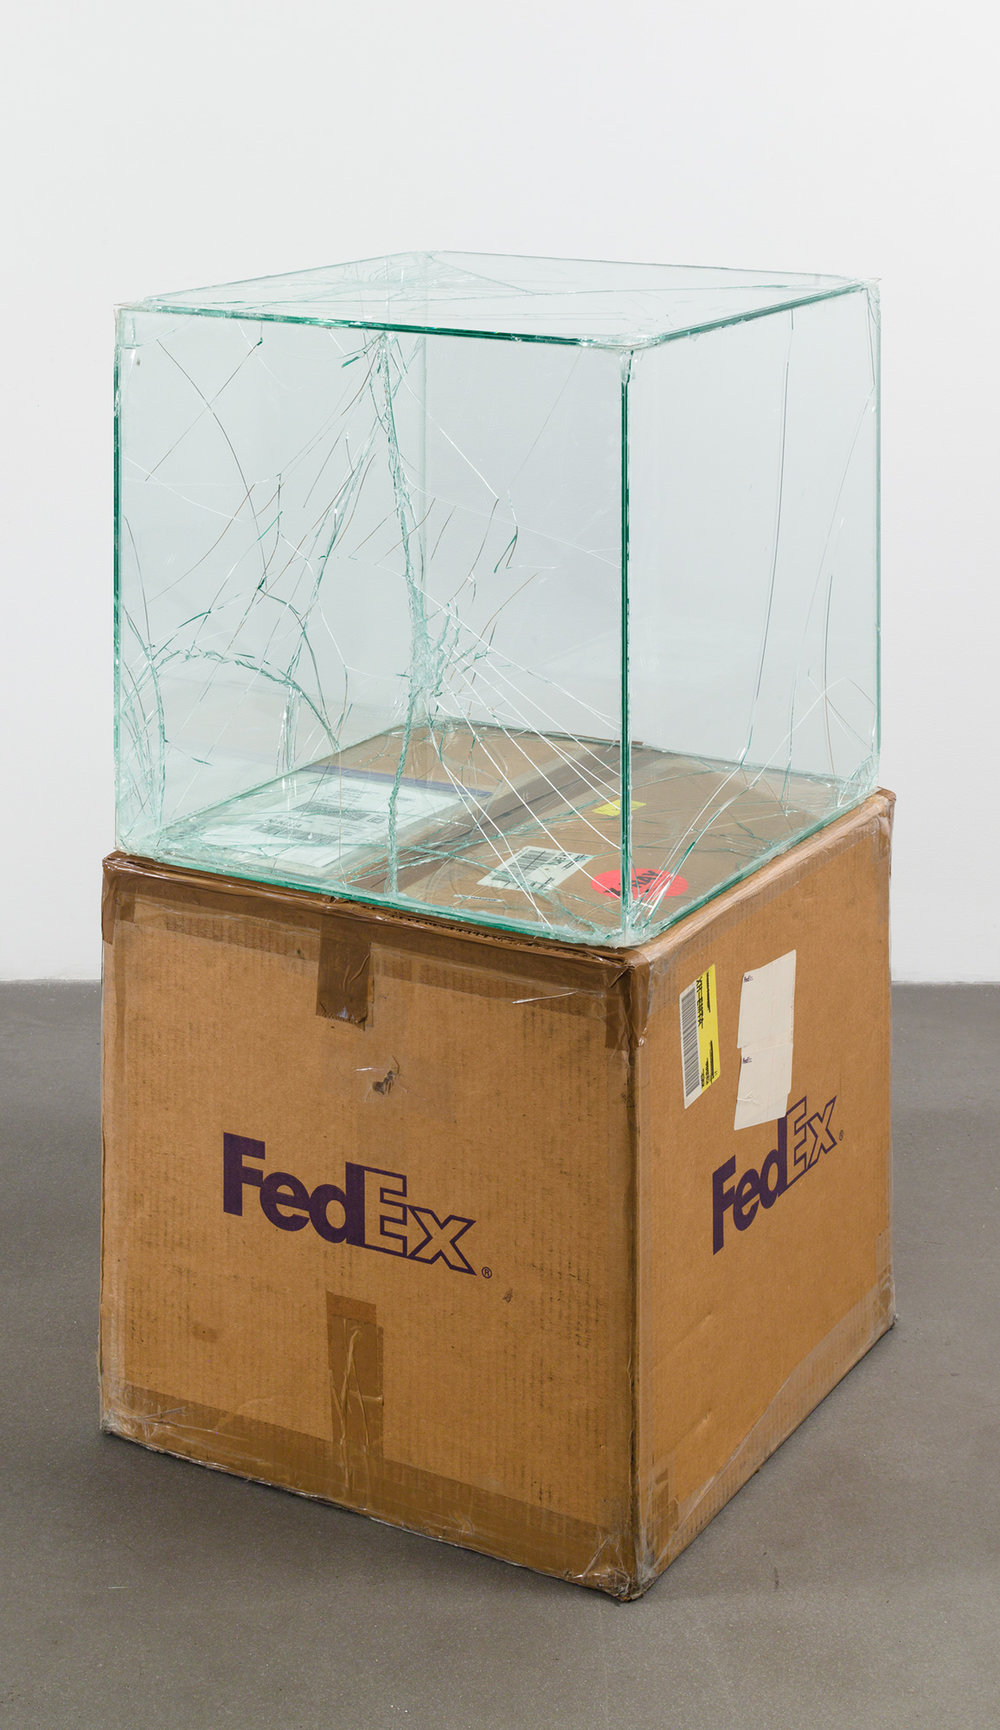 FedEx Large Kraft Box 2005 FEDEX 330508 REV 10/05 SSCC, International Priority, Los Angeles–Brussels trk#865282057975, October 27–30, 2008, International Priority, Brussels–Los Angeles trk#866071746396, December 8–9, 2008, Standard Overnight, Los Angeles–New York trk#774901659423, November 4–5, 2015, Standard Overnight, New York–Los Angeles trk#775241449093, December 21–22, 2015    2008–   Laminated glass, FedEx shipping box, accrued FedEx shipping and tracking labels, silicone, metal, tape  20 x 20 x 20 inches   Industrial Pictures, 2008    Great Hall Exhibition, 2015